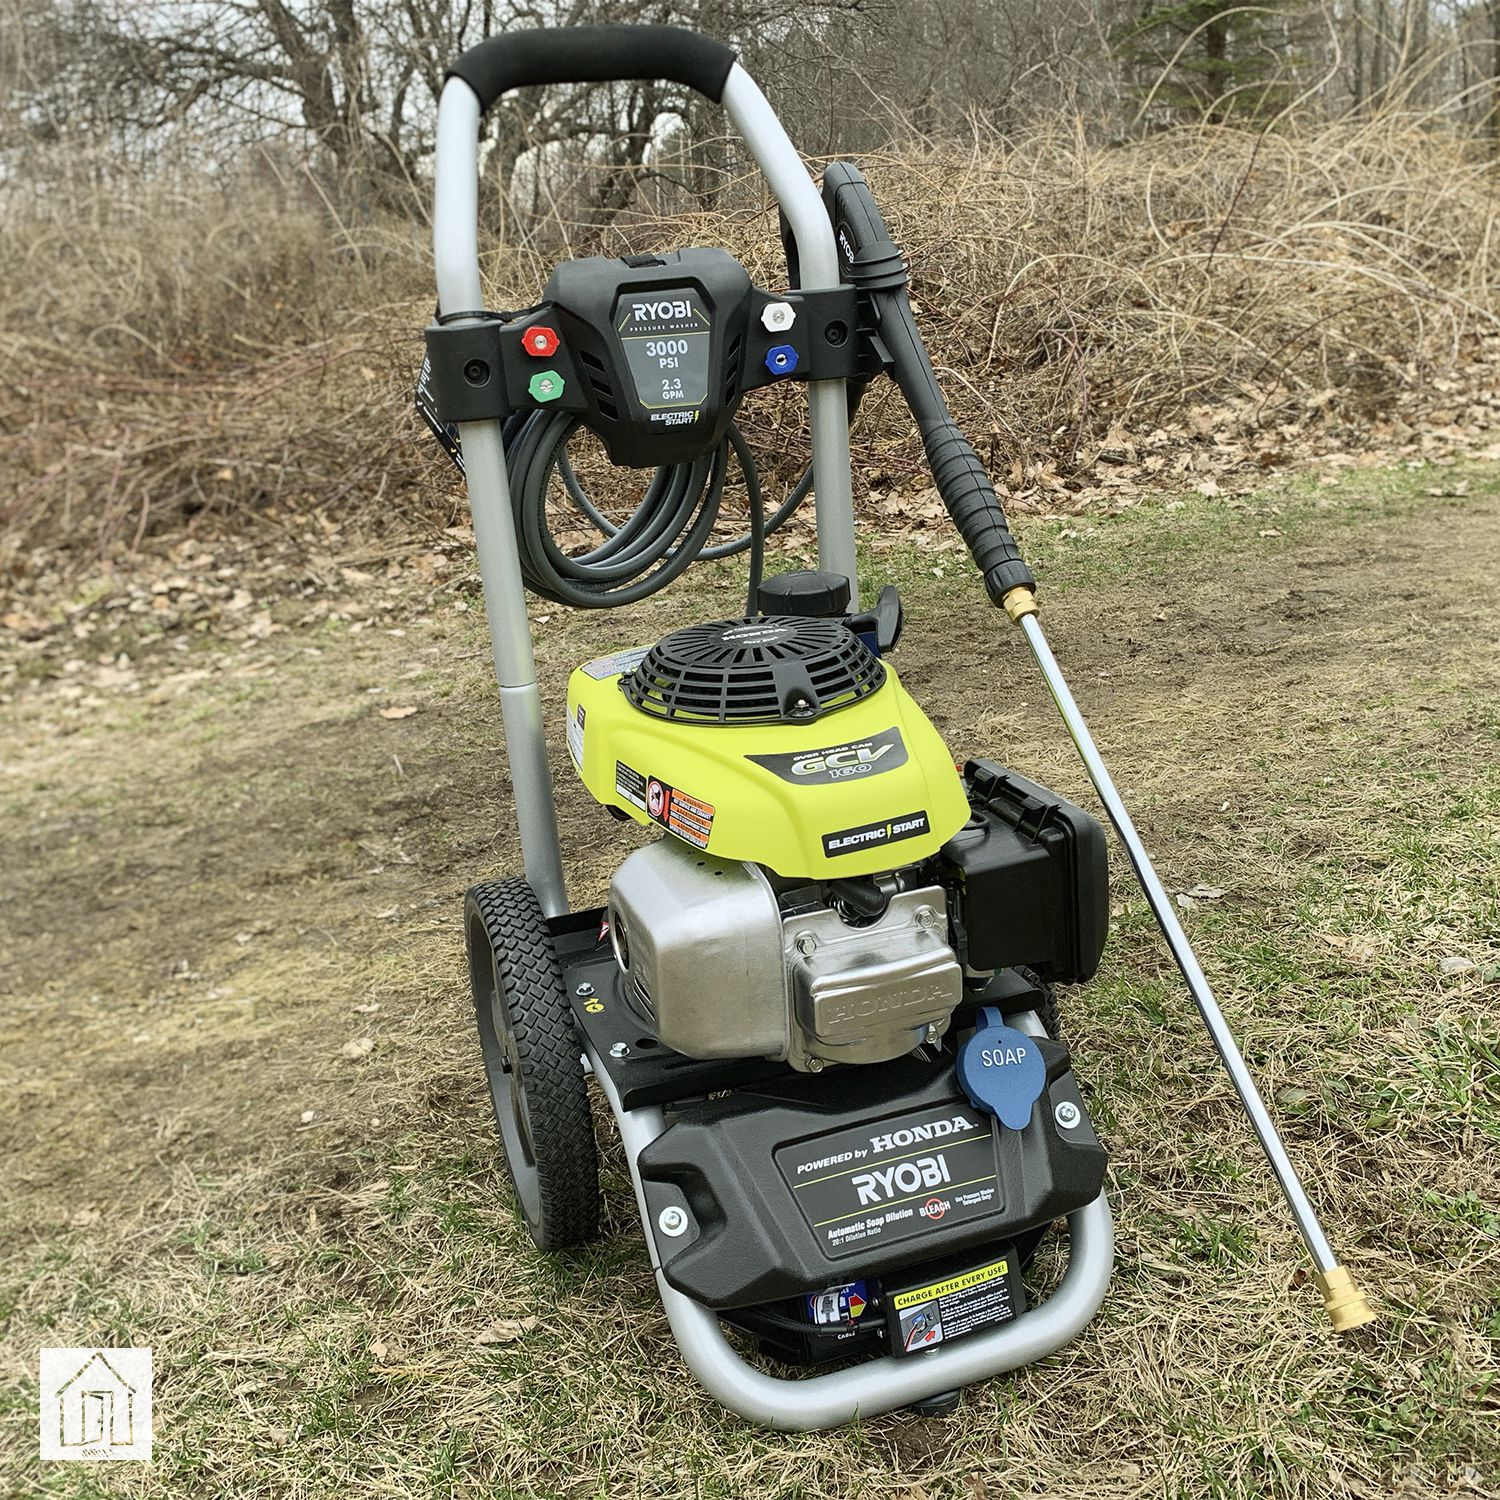 Ryobi 3000 Psi Pressure Washer Review Powerful And Feature Packed